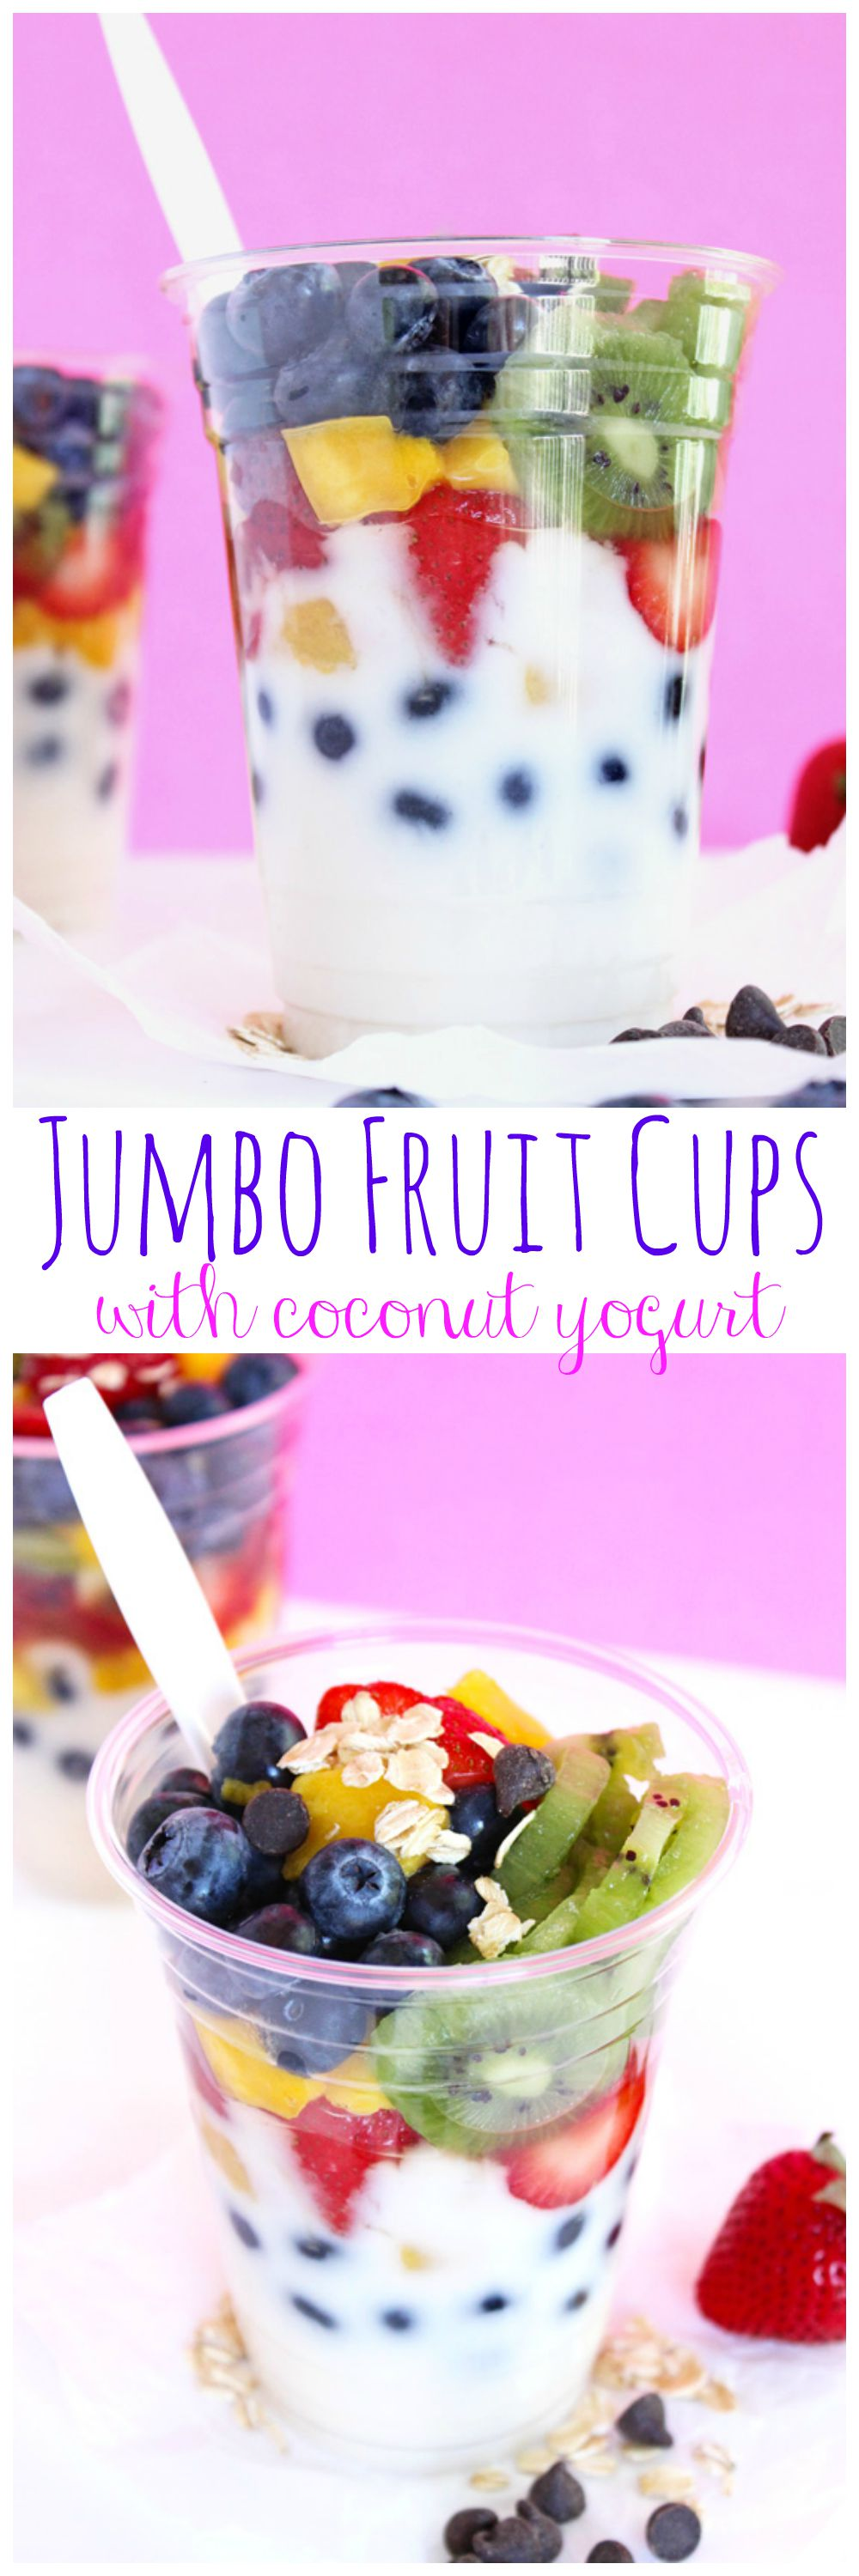 Jumbo Fruit Cups with Coconut Yogurt. Delicious vegan snacks. The real fast food. Eat the Rainbow! #fruitsalad #parfaits